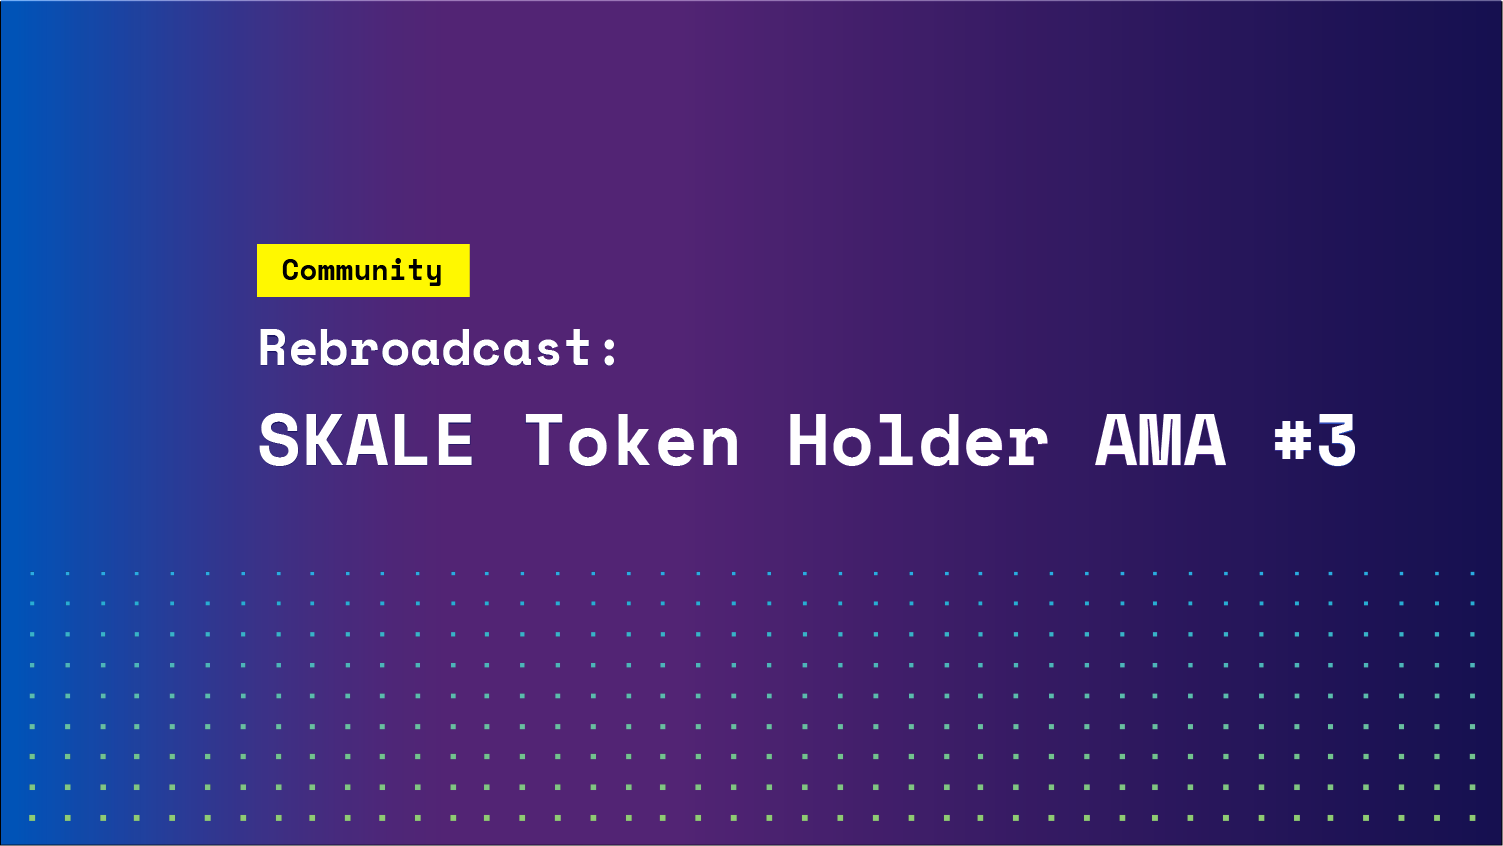 Rebroadcast: SKALE Token Holder AMA #3